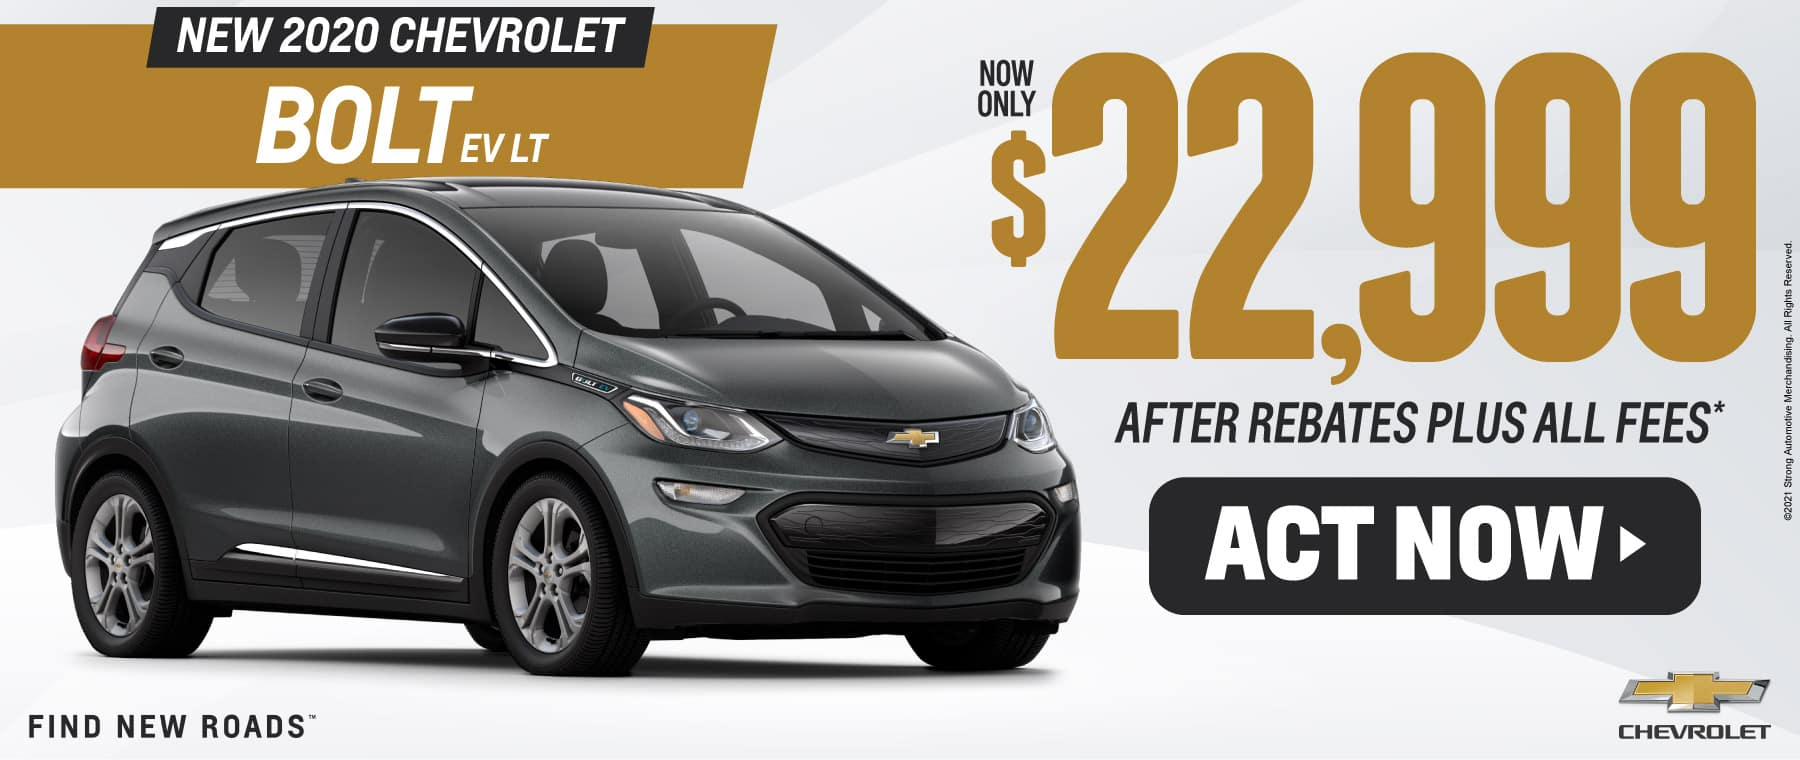 New 2020 Chevrolet Bolt only $22,999 - ACT NOW